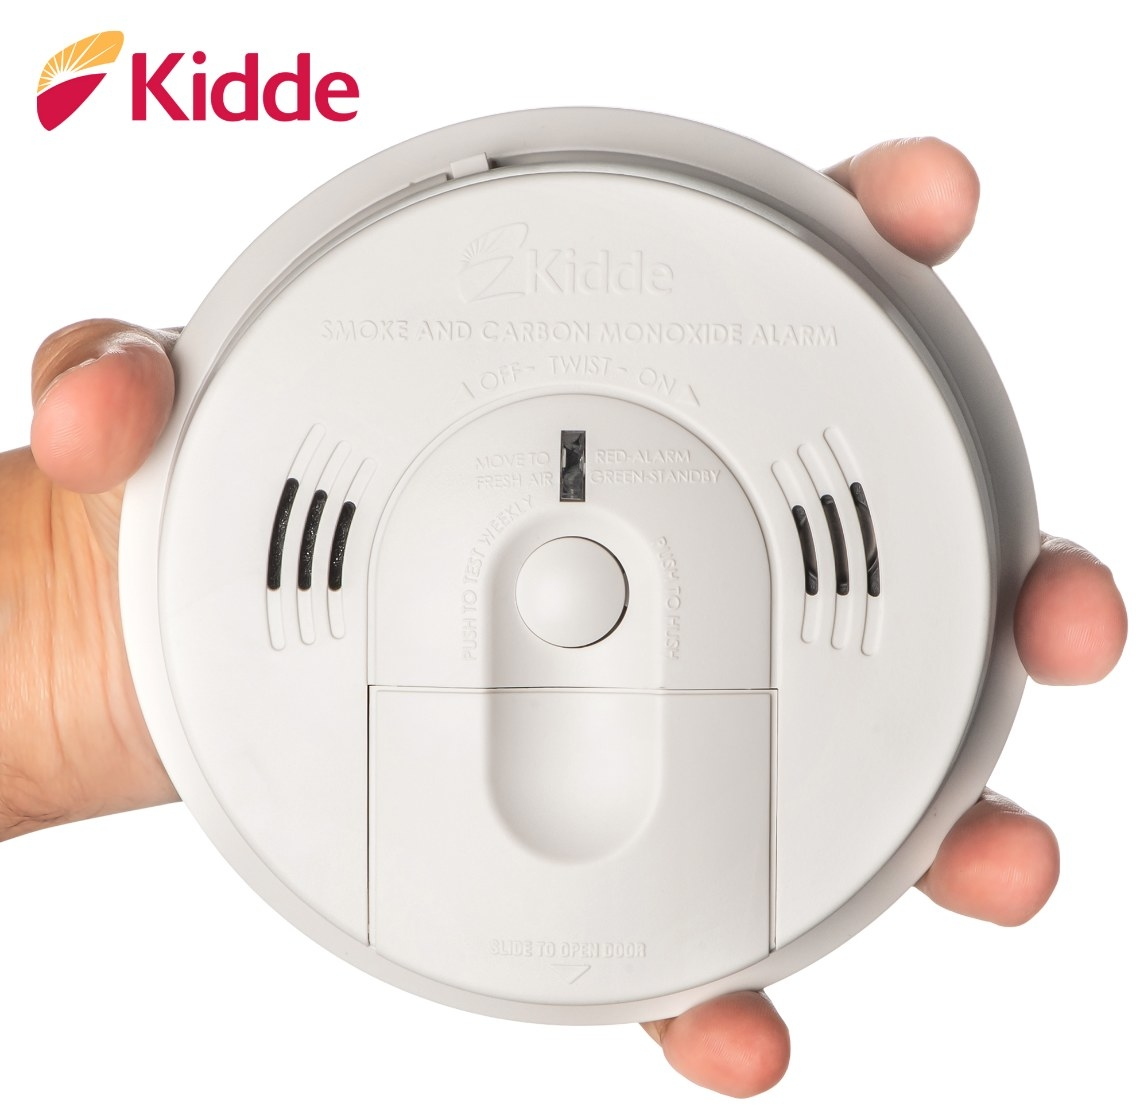 The battery-operated carbon monoxide detector